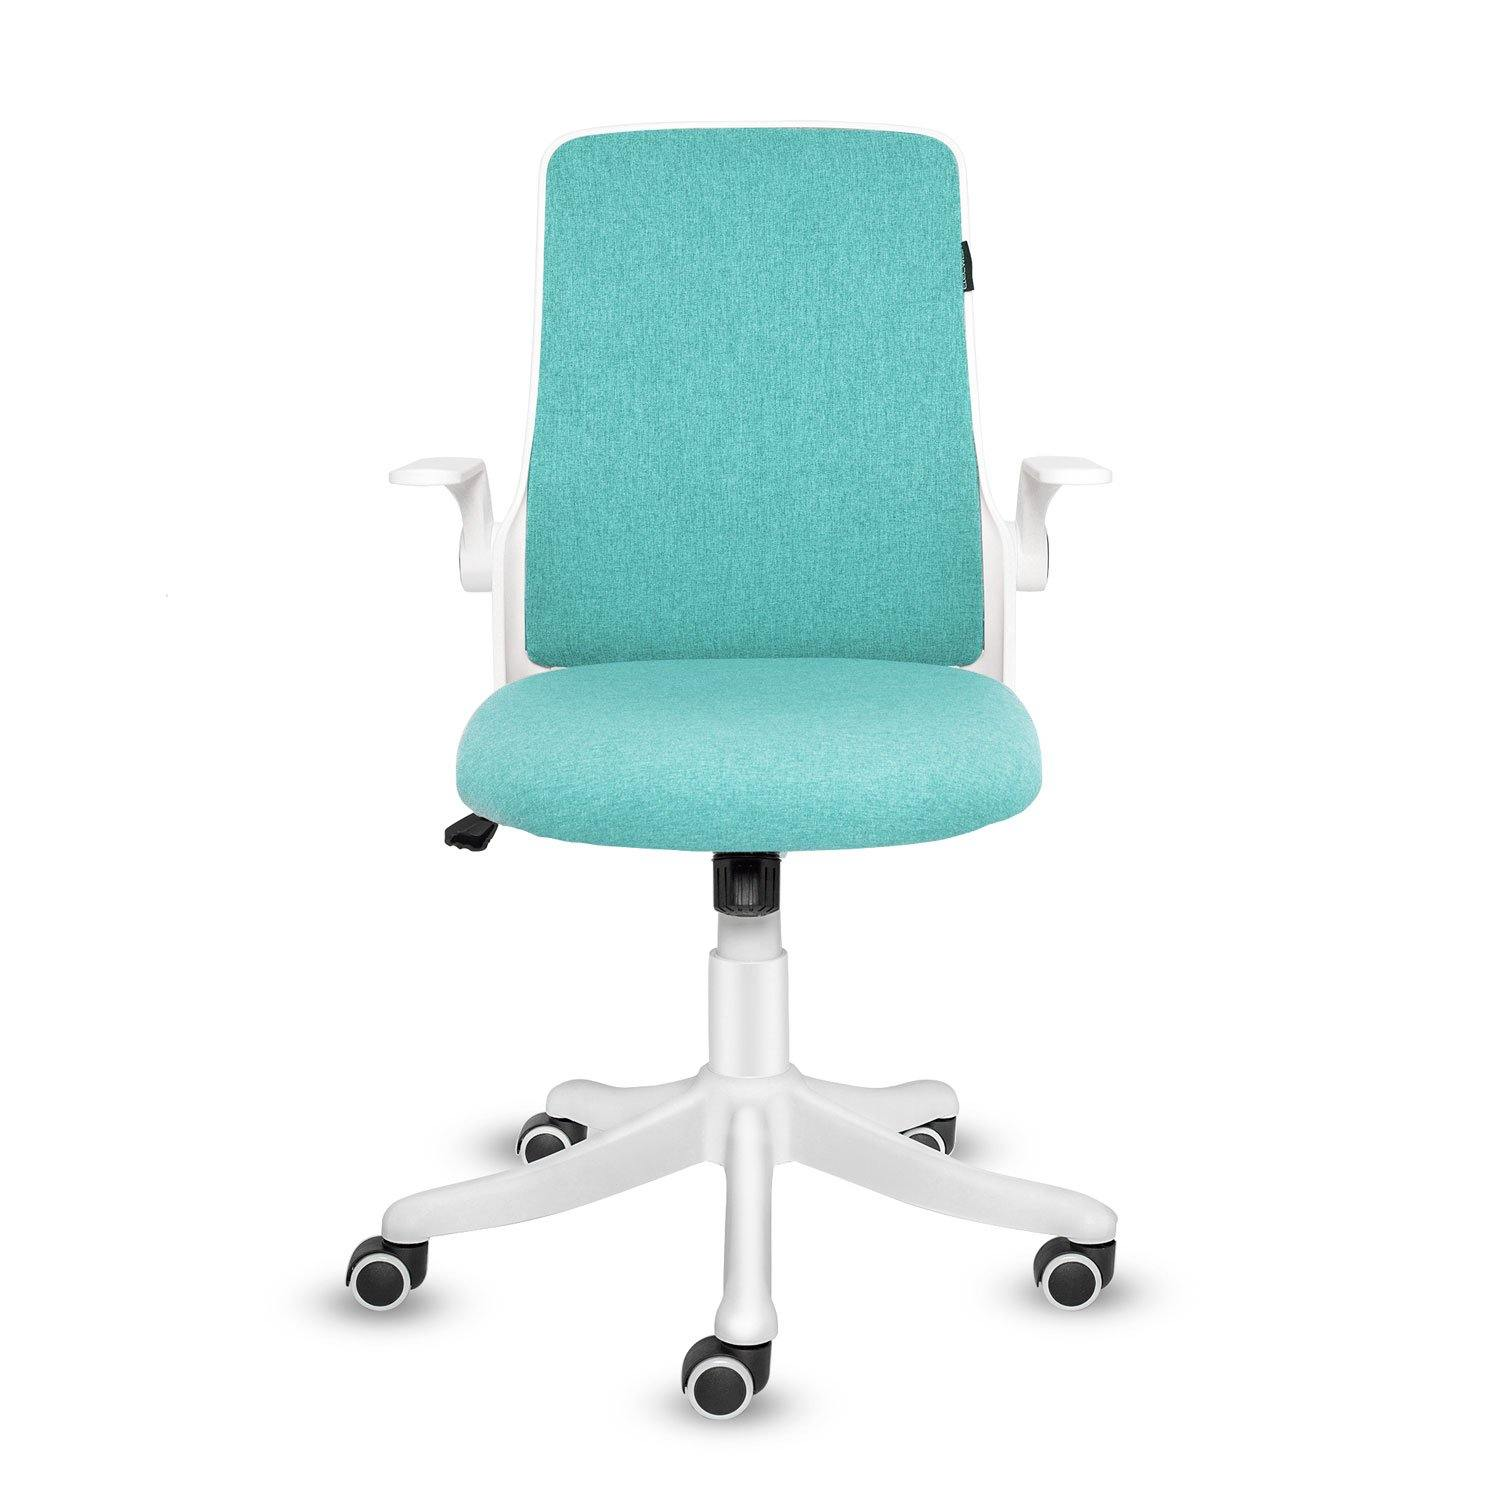 Seat Adjustable with Flip-up Armrests Office Chair